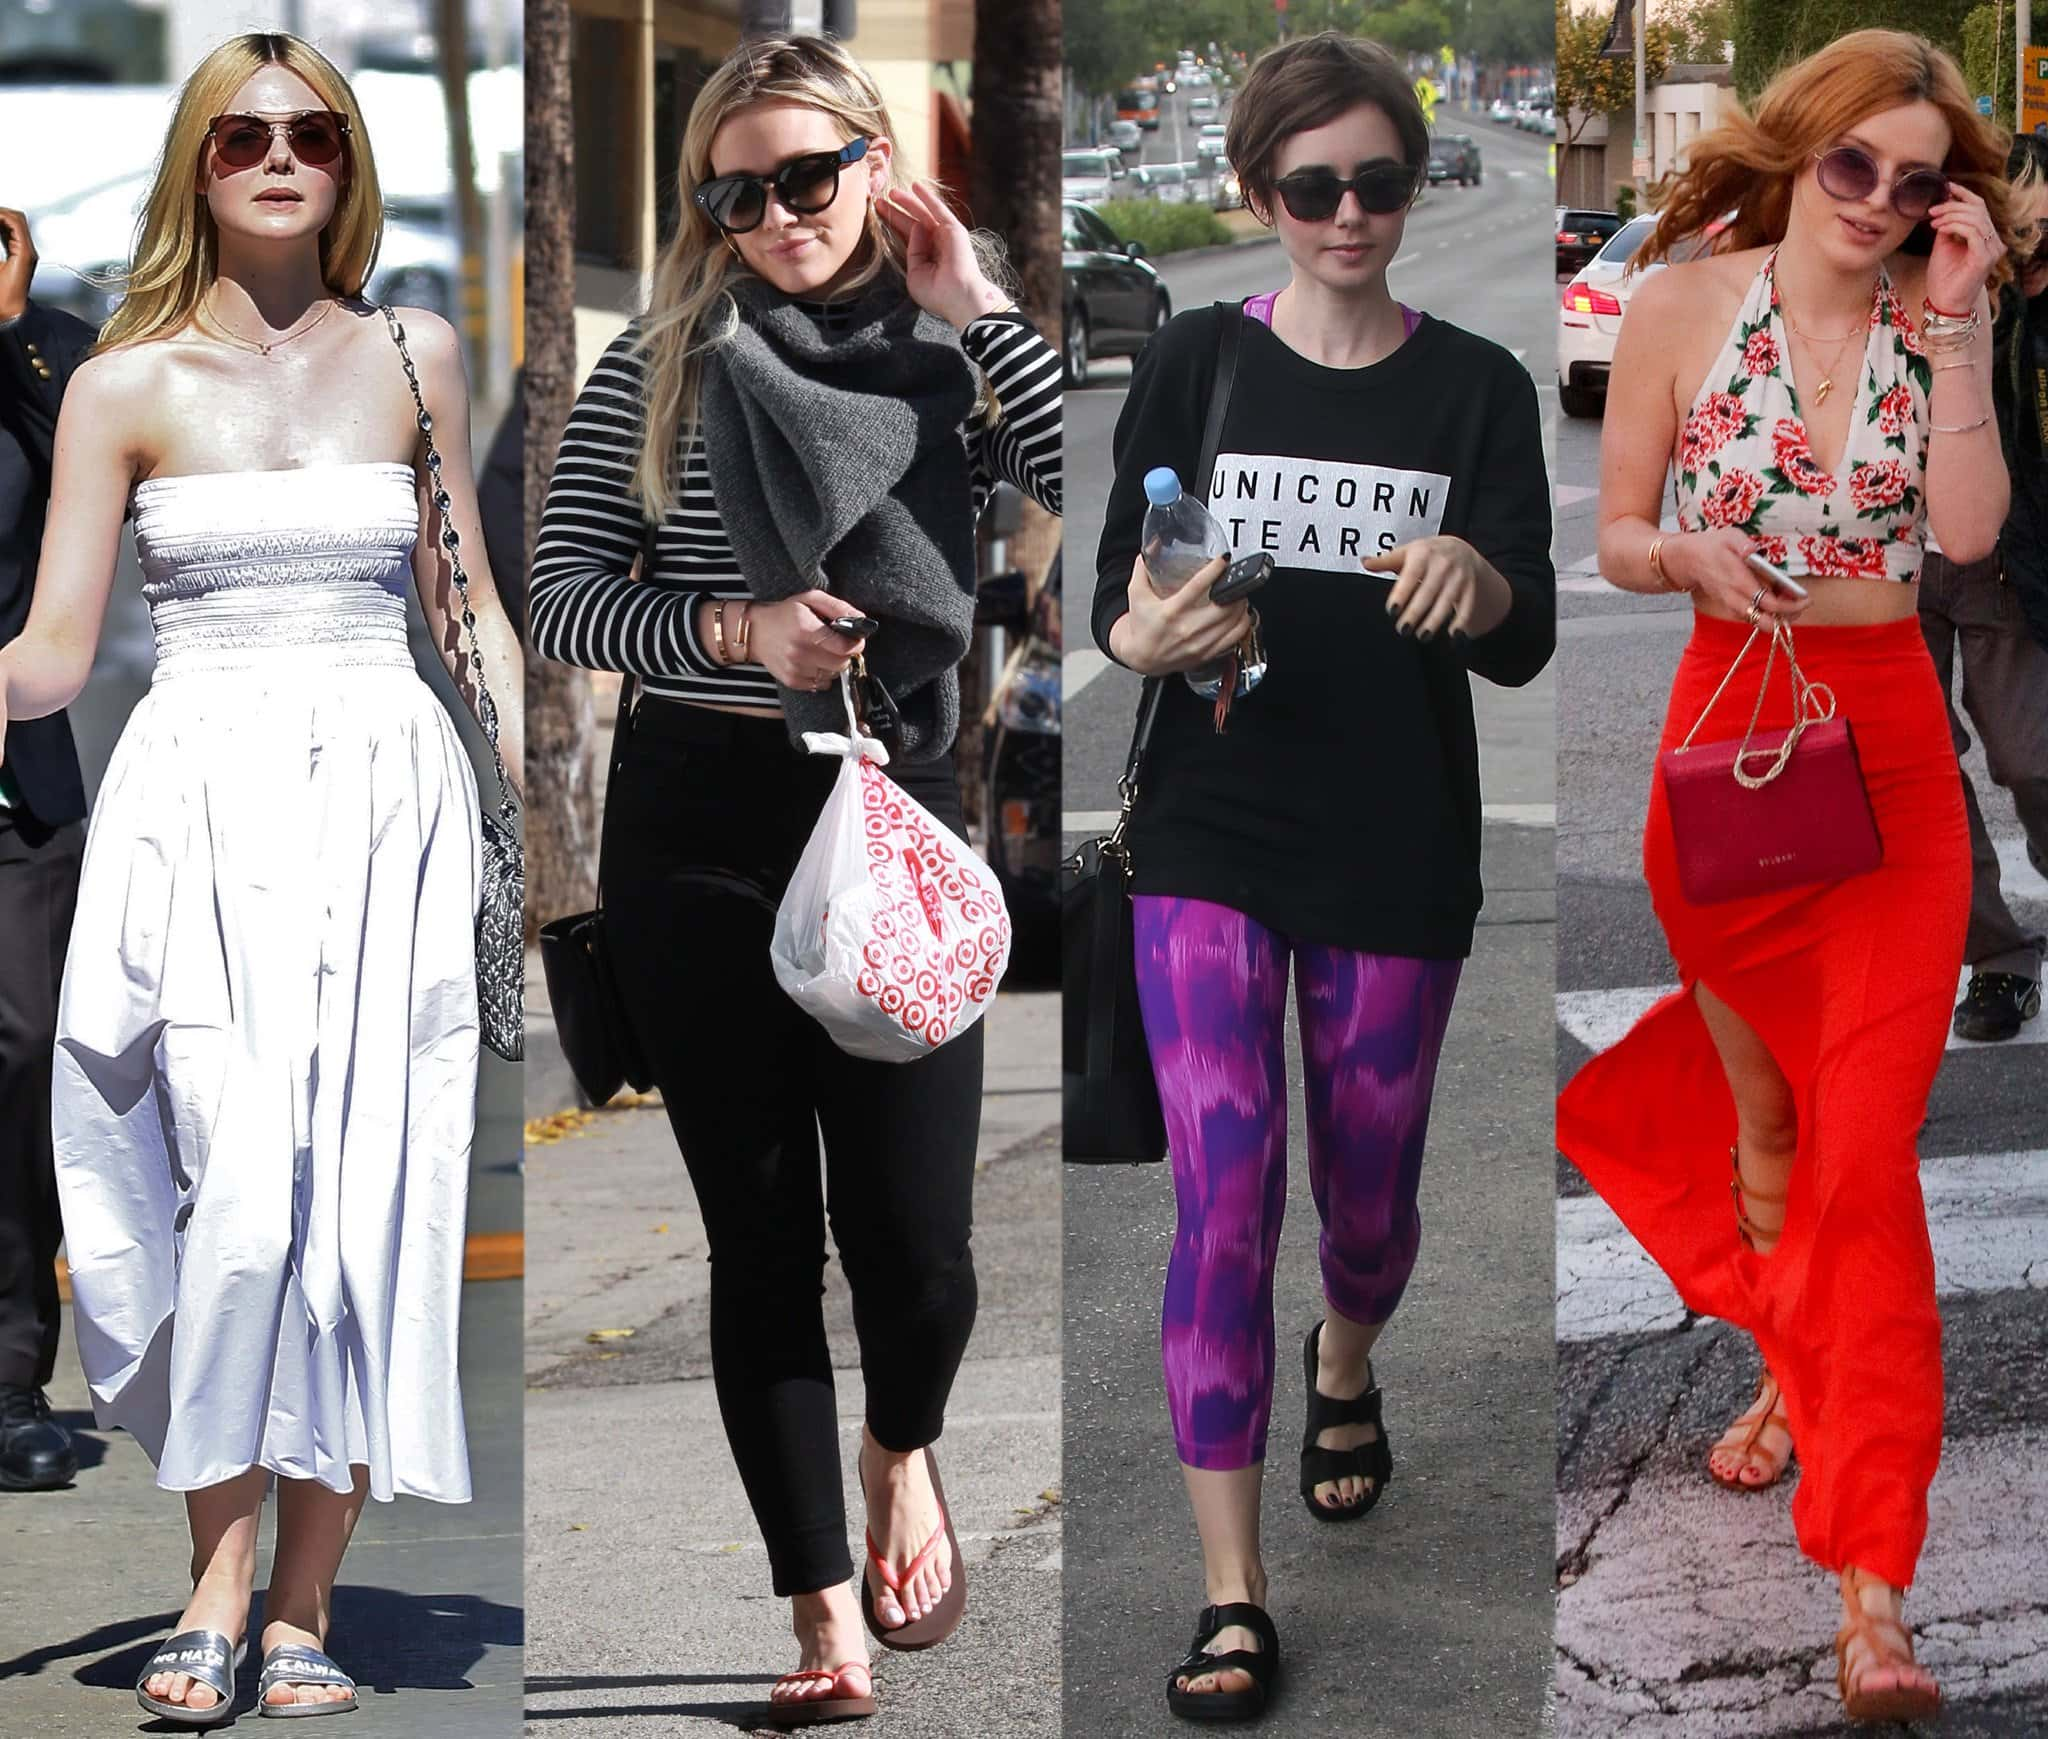 Elle Fanning, Hilary Duff, Lily Collins, and Bella Thorne wearing comfy summer sandals